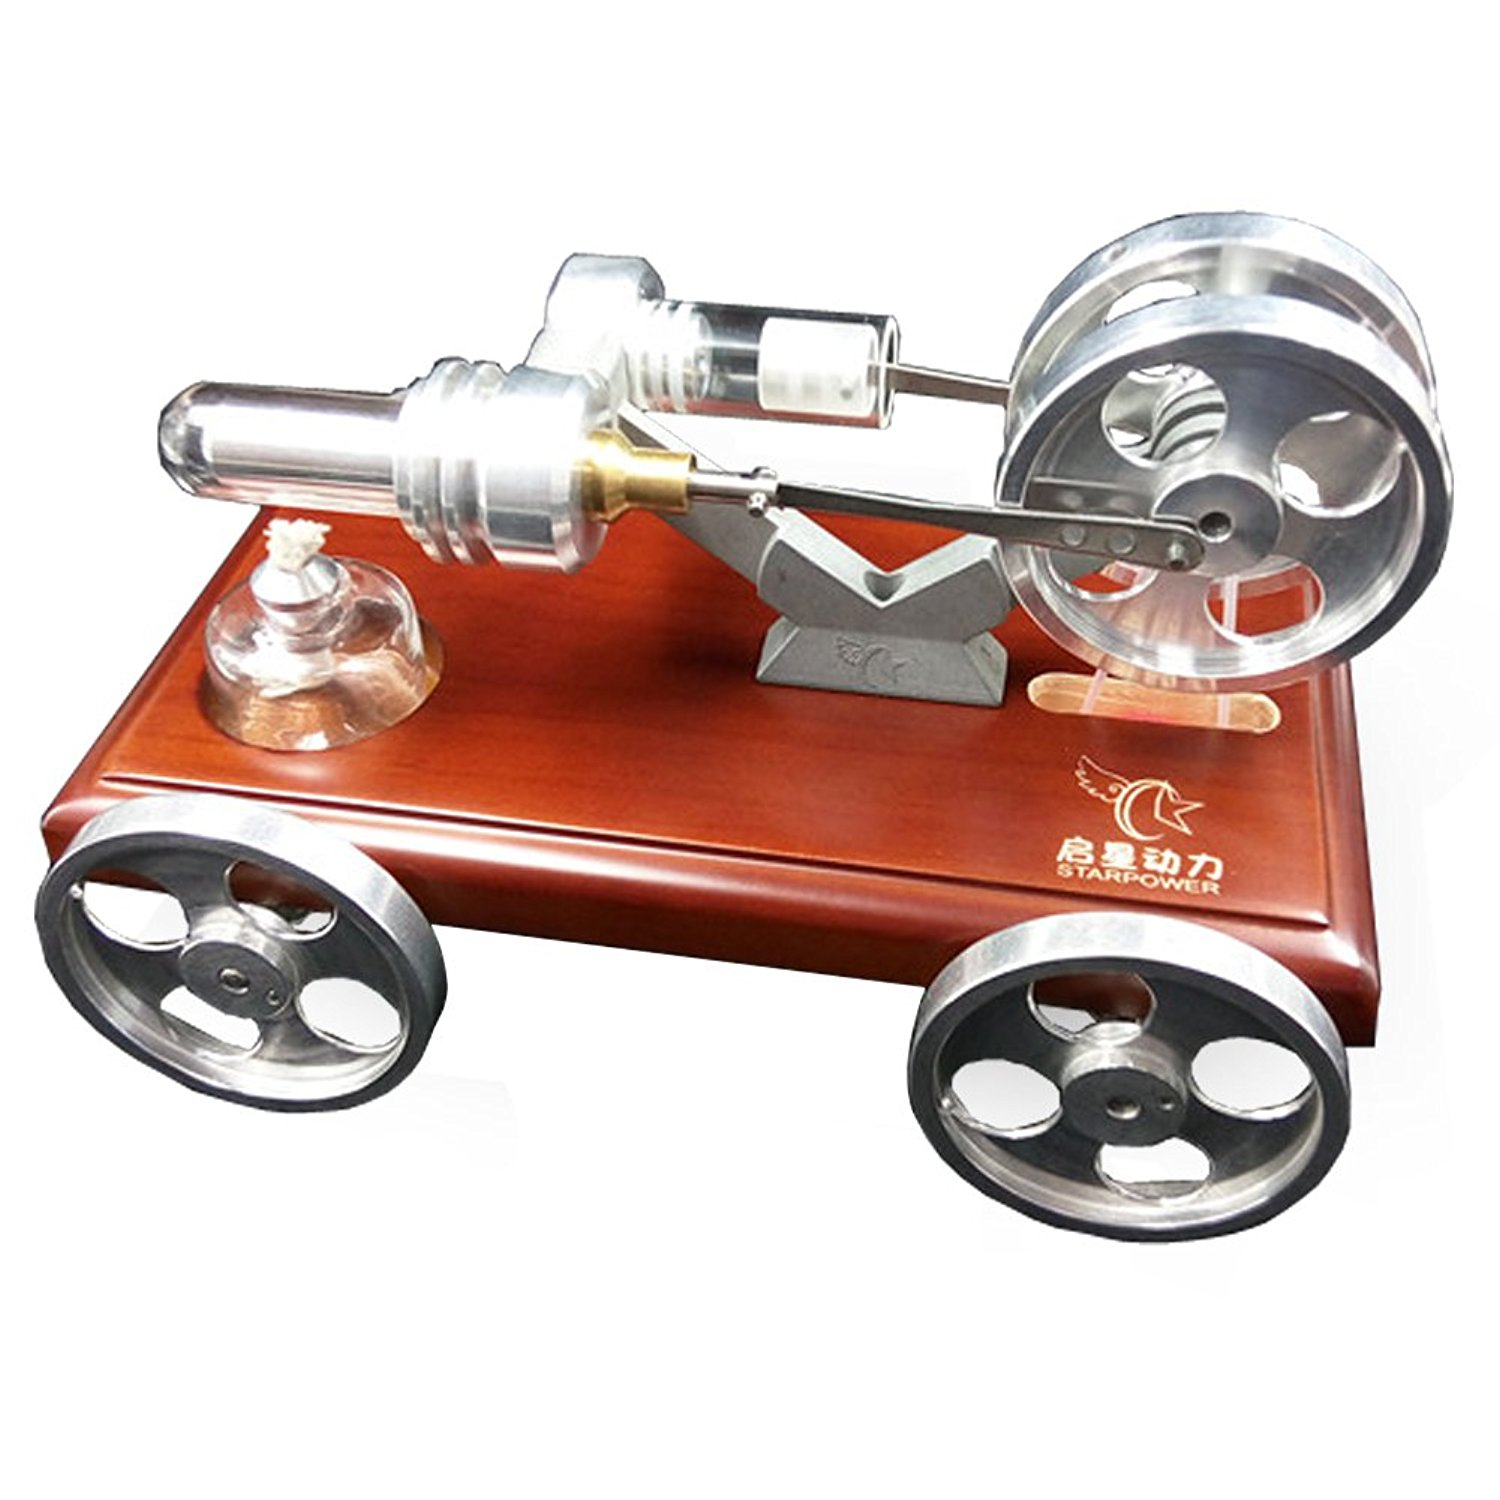 Teroys®Mini Hot Air Stirling Engine Motor, Low Temperature Stirling Engine Kit, Model Car Kit, Educational Toy Electricity Power Generator, Stream Hit Education Model Toy Kit